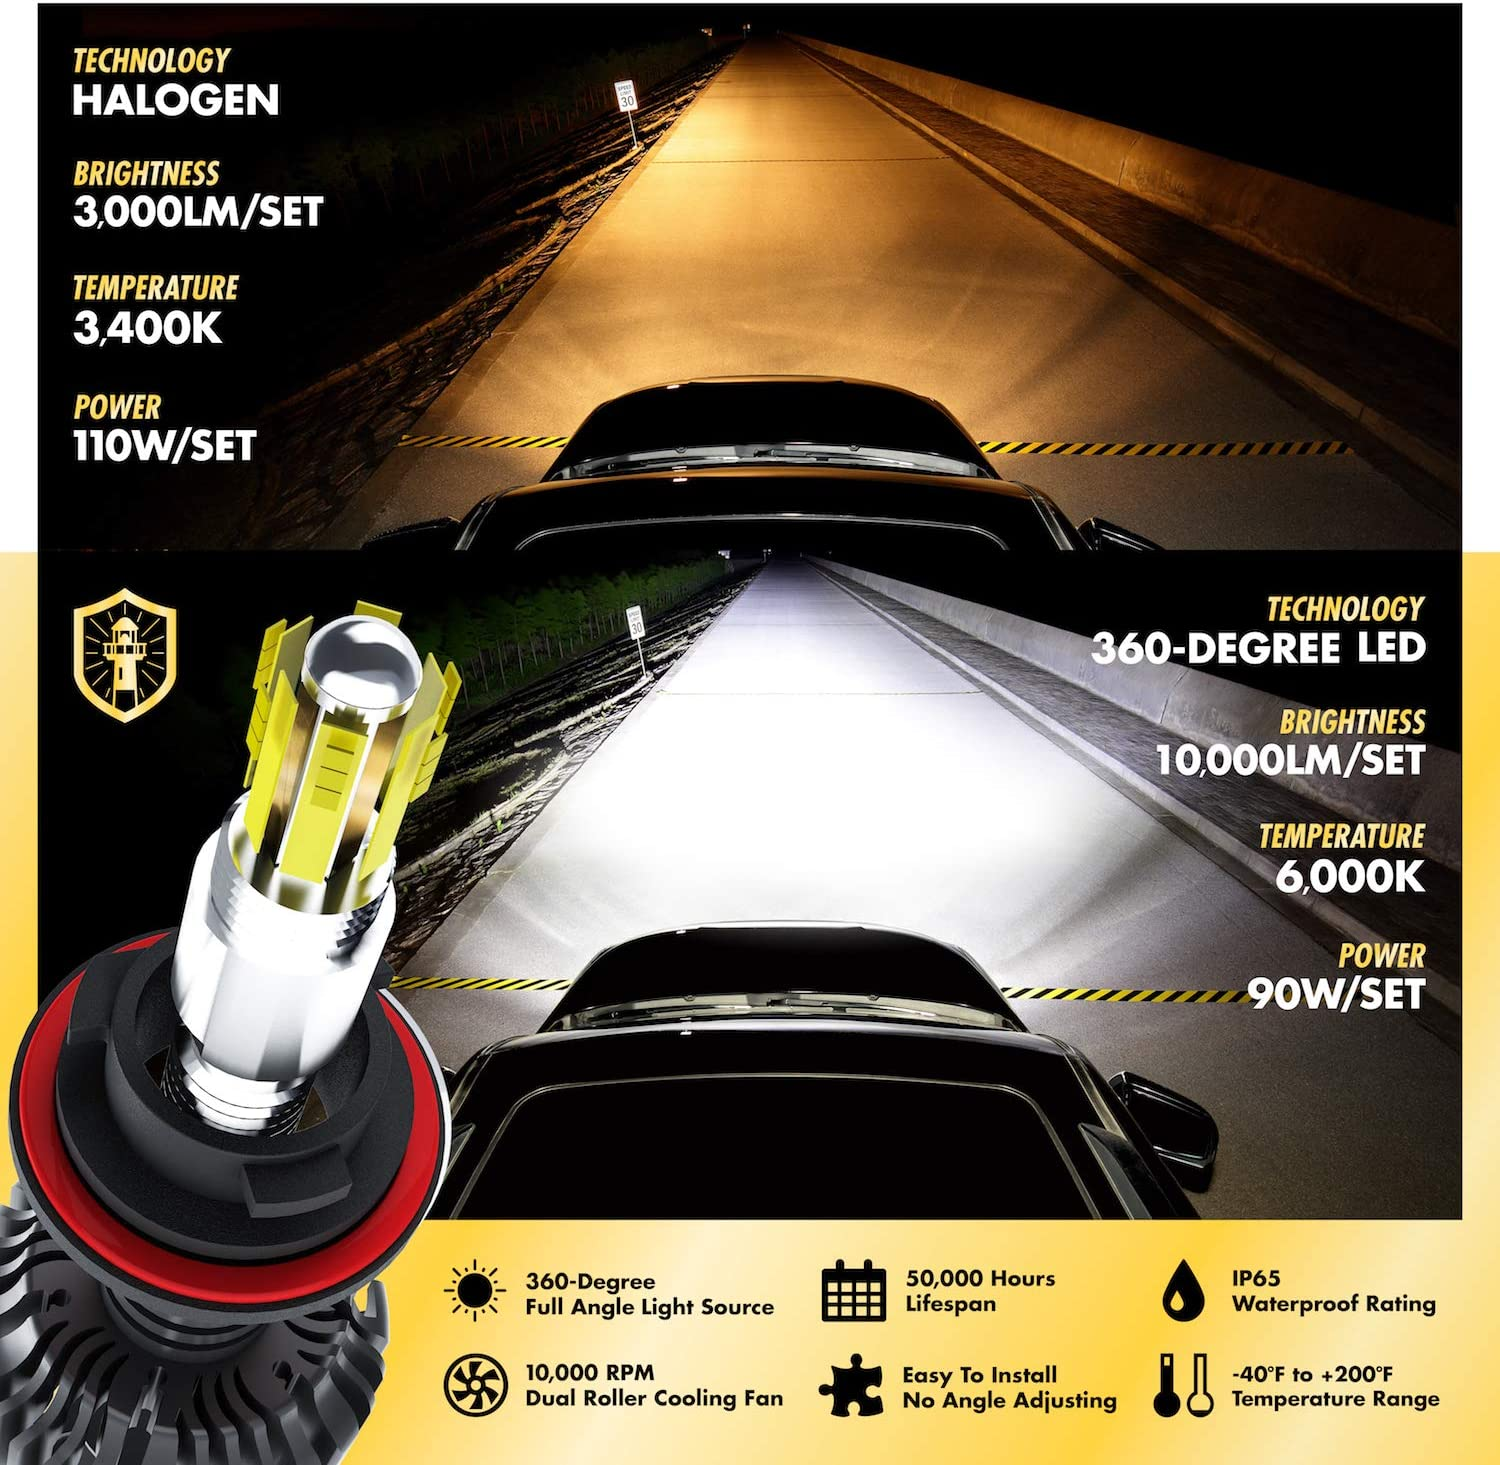 2 Yr Warranty Light Moses 360 Degree LED Headlight Bulbs Conversion Kit High Low Beam H7 6,000K Sky White 10,000LM with 50,000 Hour Lifespan